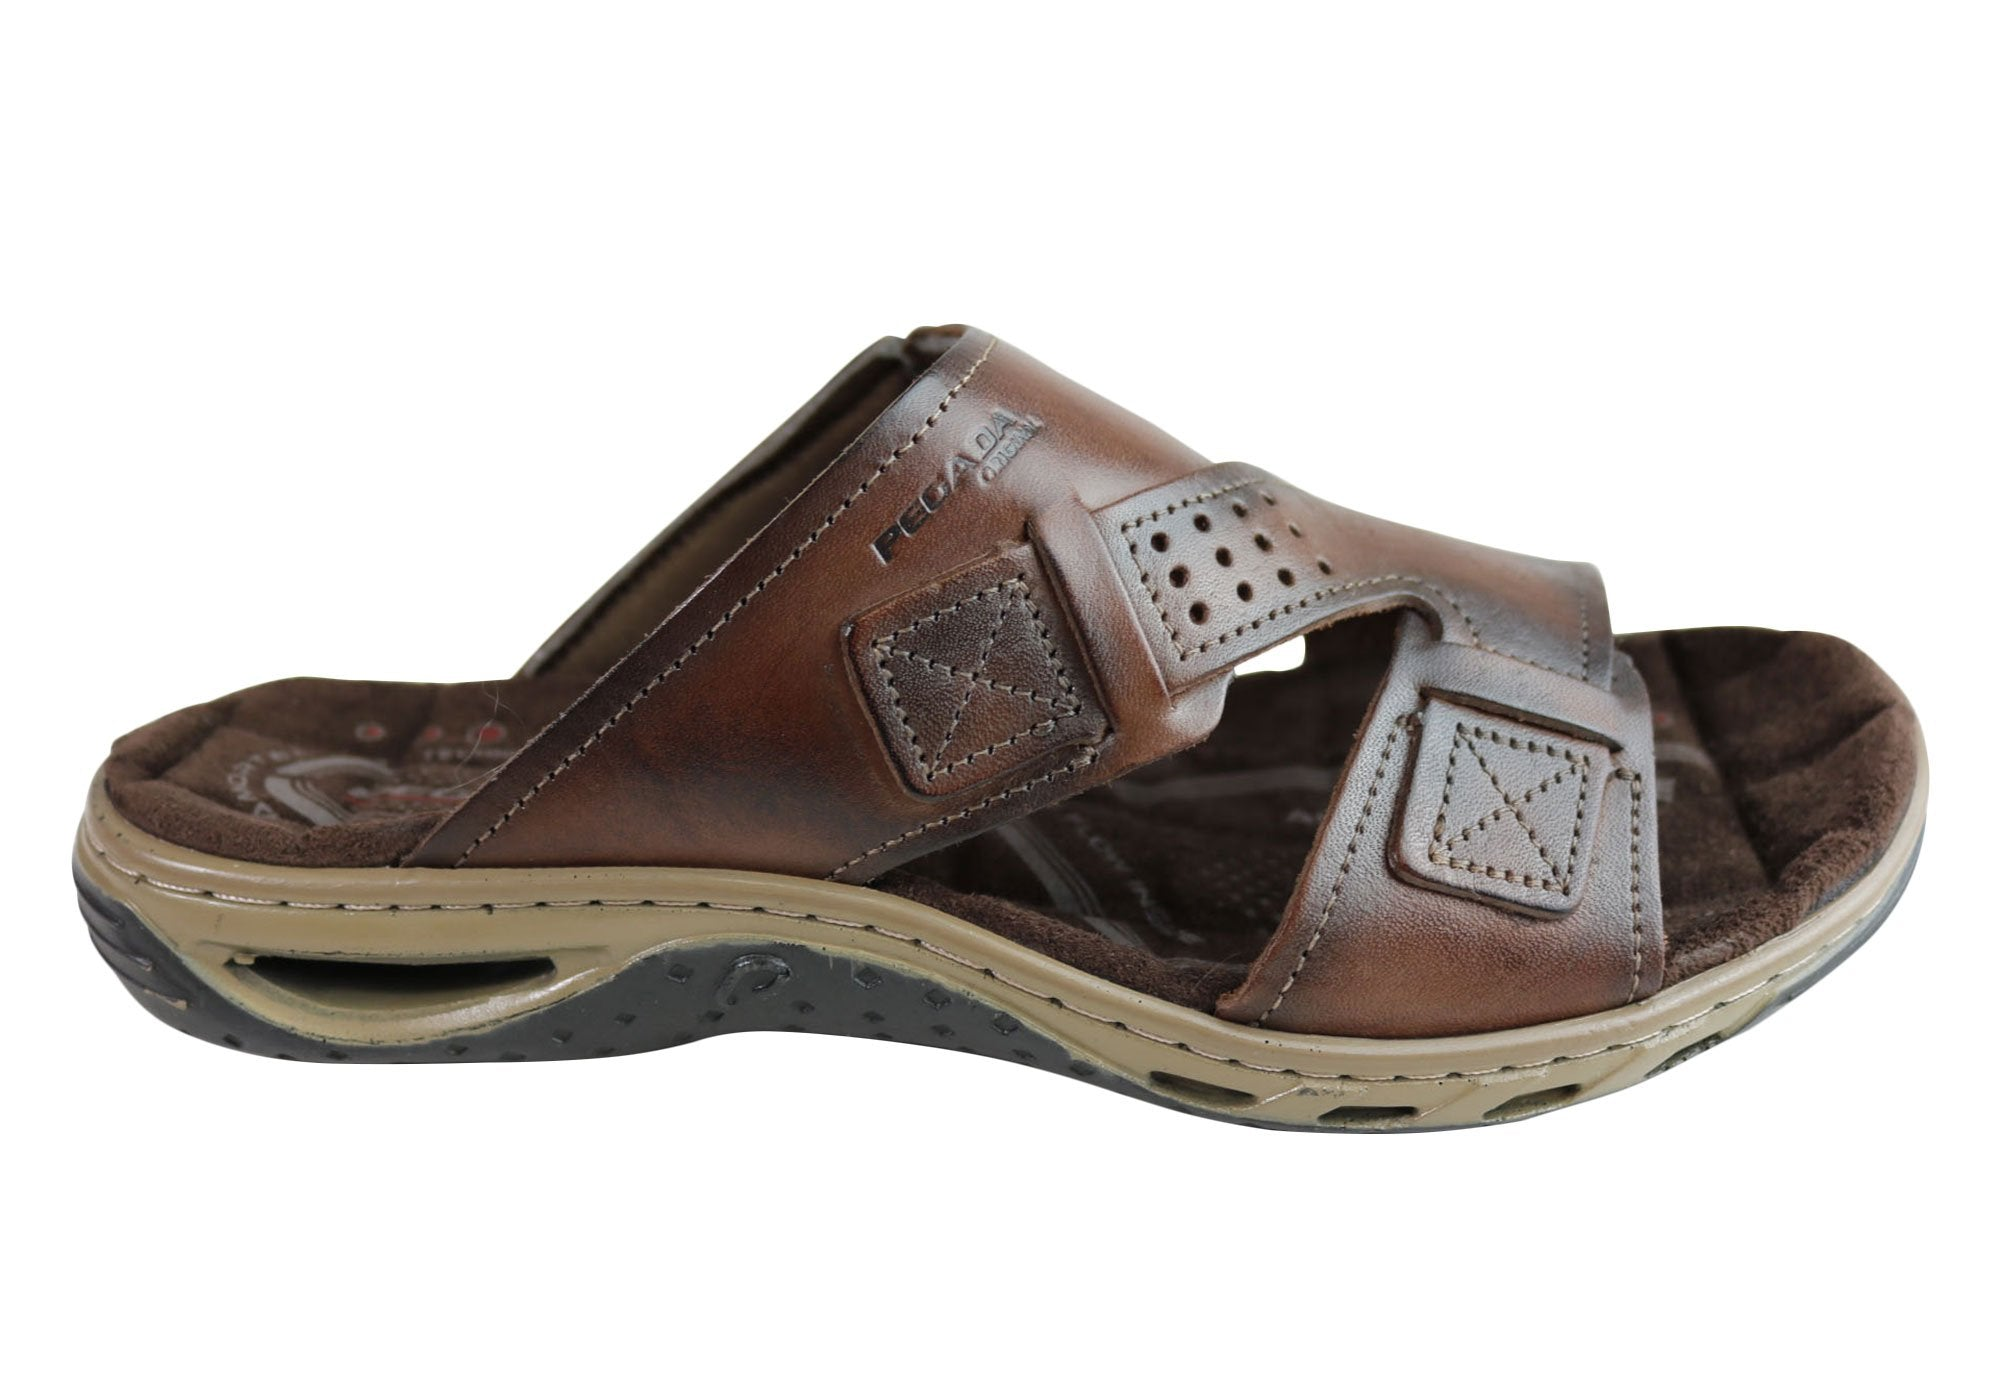 6cb6a521c9fe Pegada Andy Mens Leather Comfy Cushioned Slide Sandals Made In Brazil